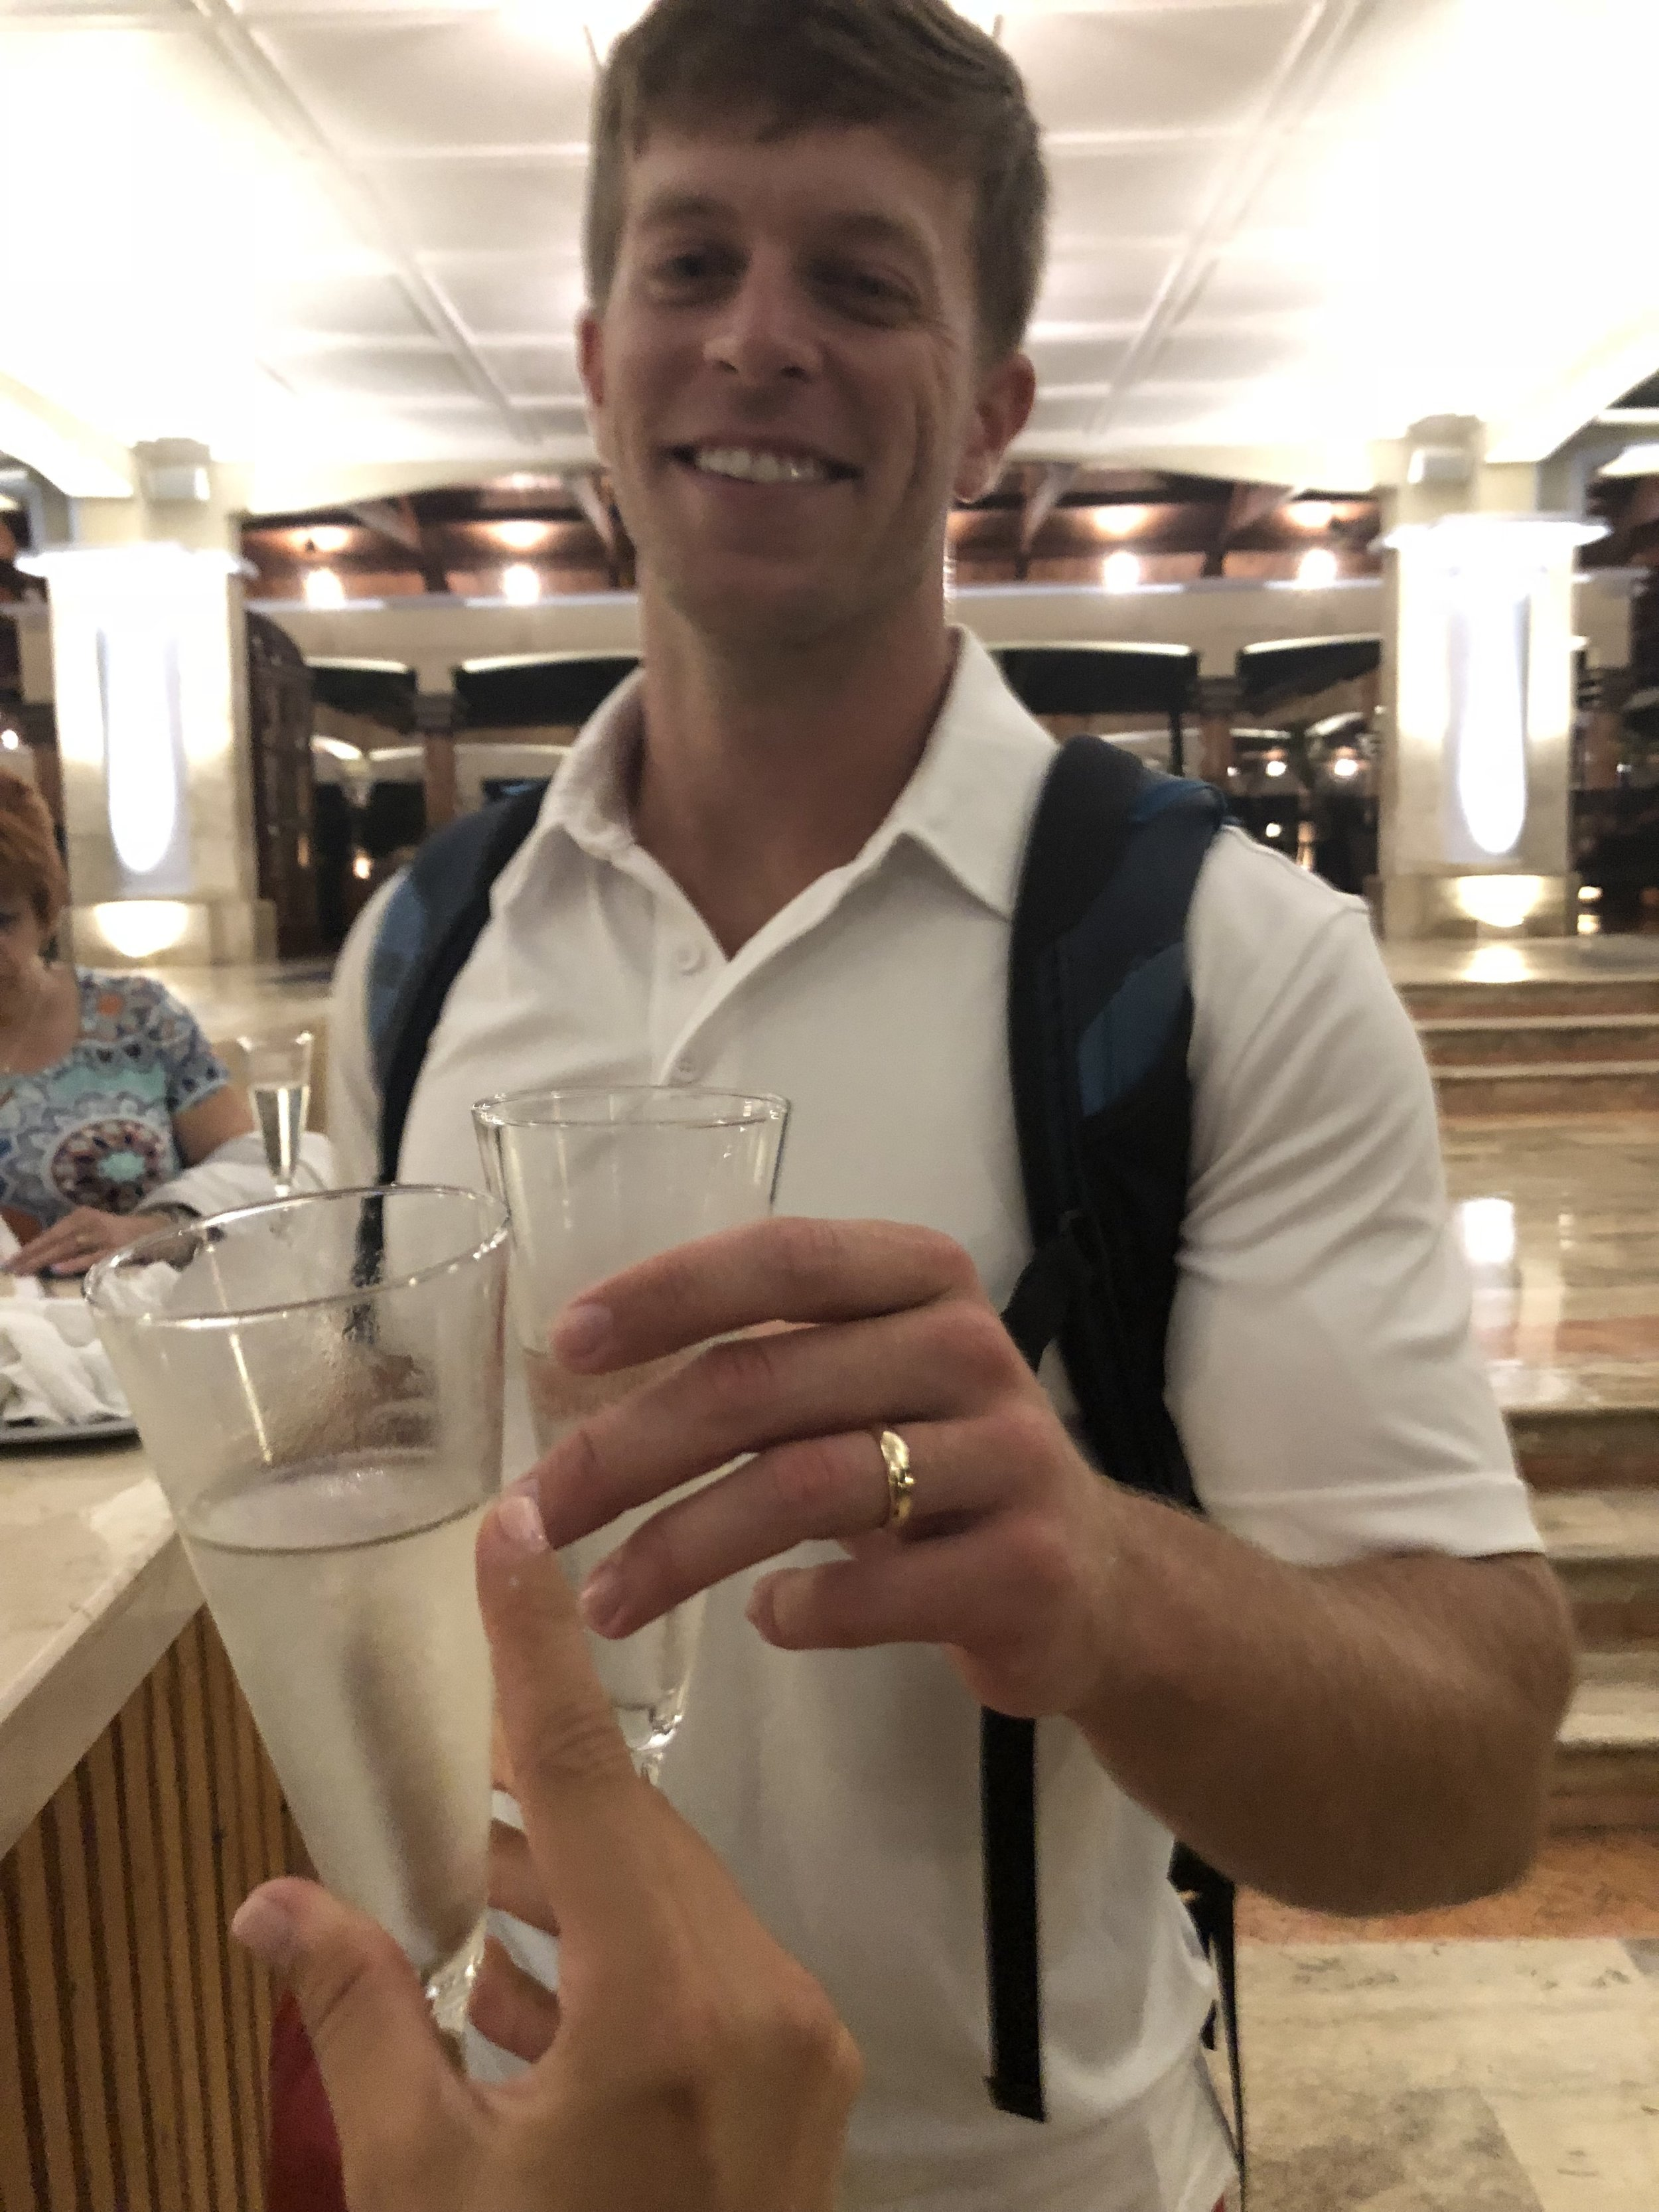 Champagne upon arrival and a private check-in for Excellence Club members. I highly recommend upgrading your package to get extra perks like a bar in your room, private dinners, a private beach area, exclusive restaurants and expedited check-in and out.